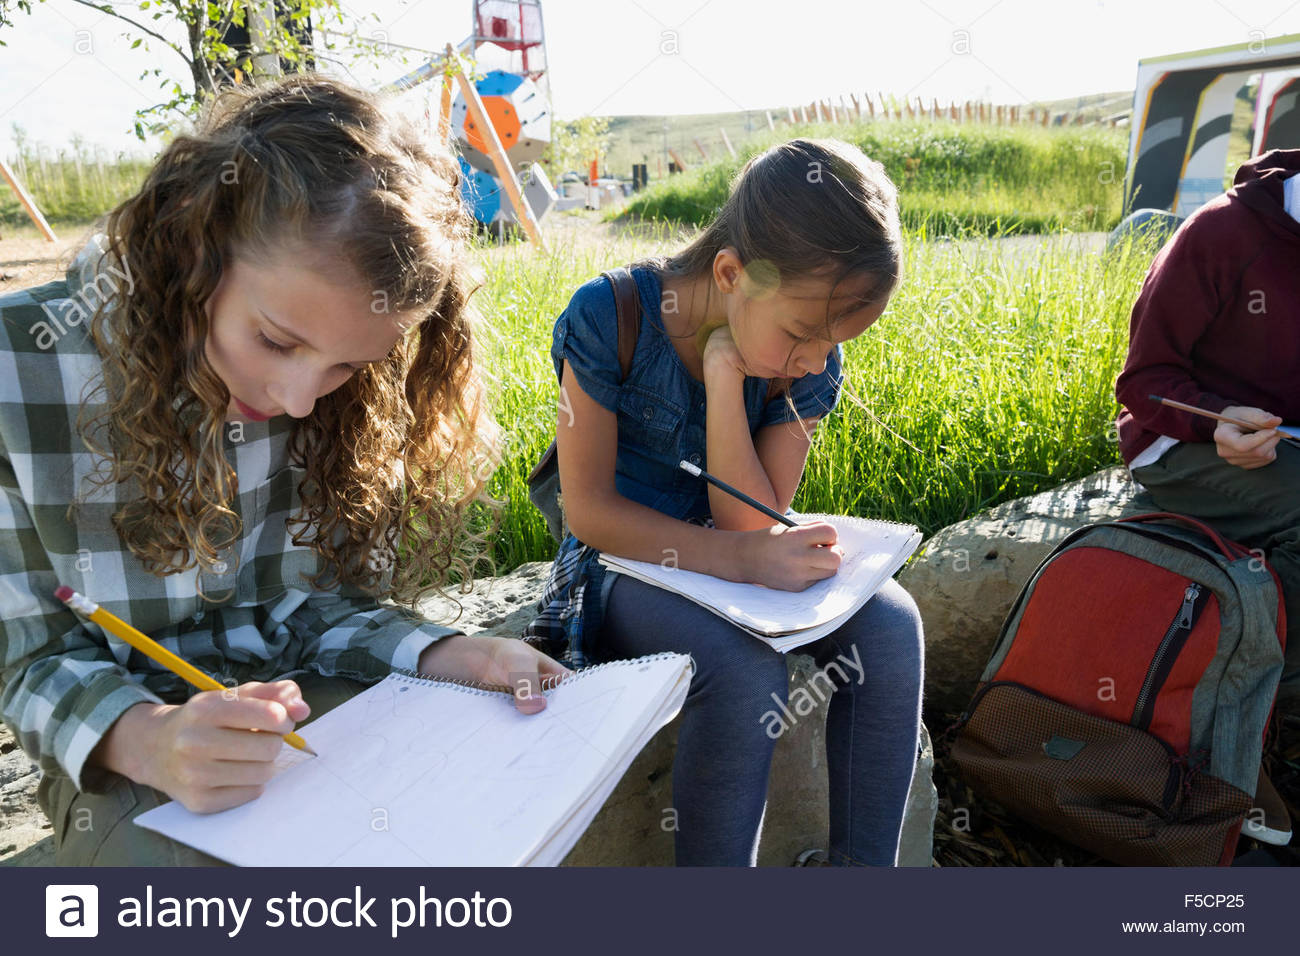 Students doing homework at sunny playground - Stock Image